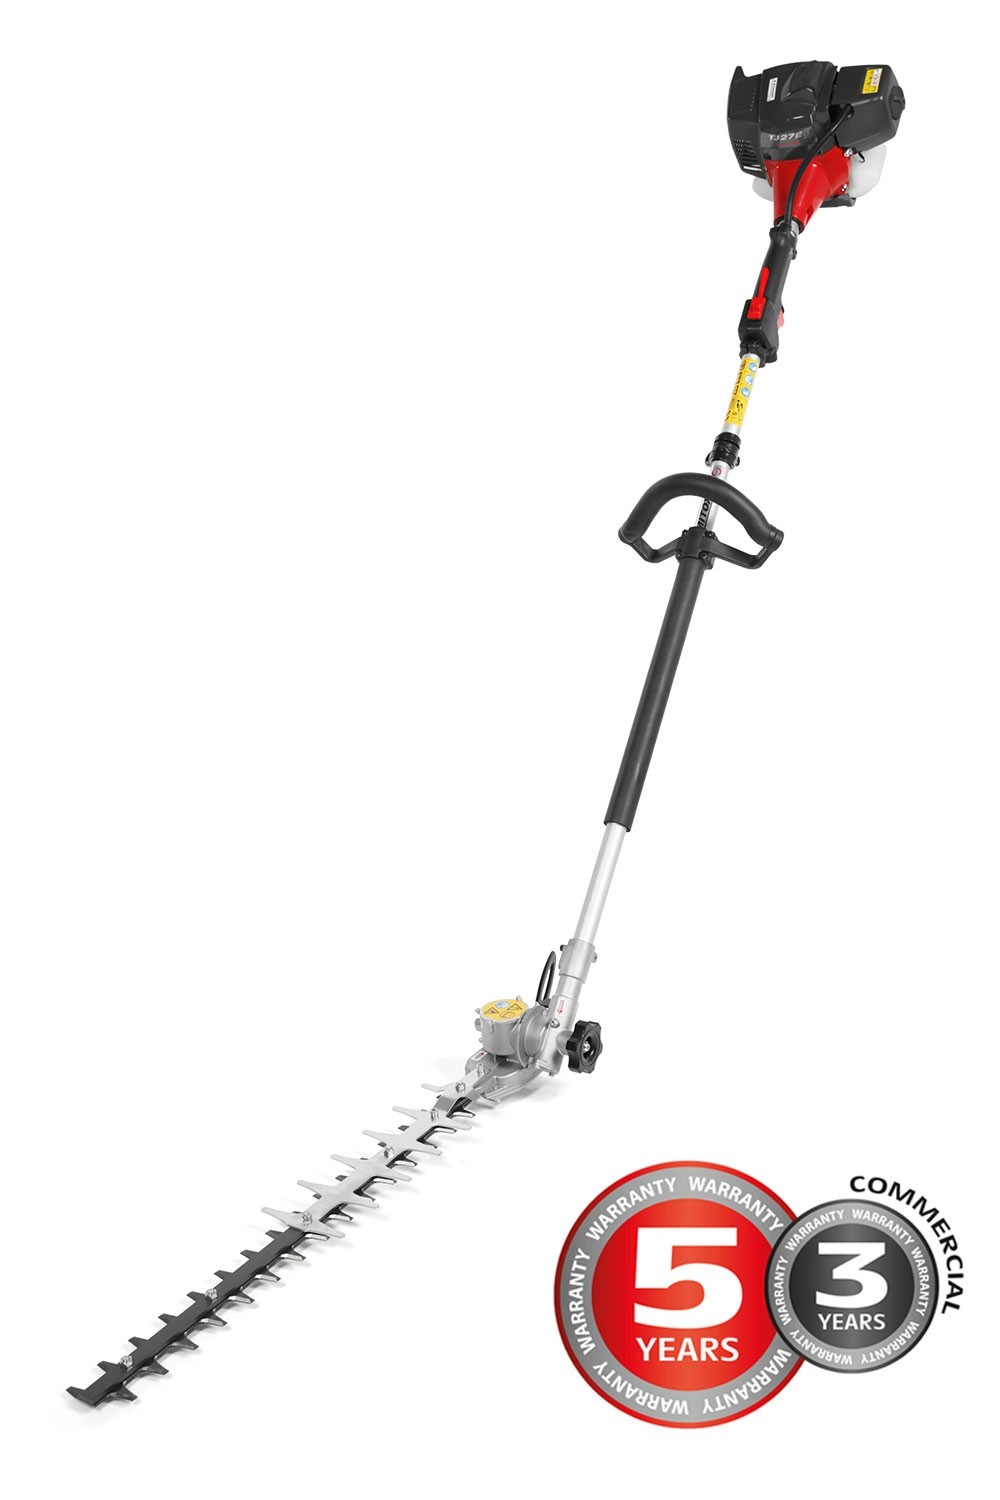 Mitox 5250LRK PRO Long Reach Petrol Hedge Trimmer